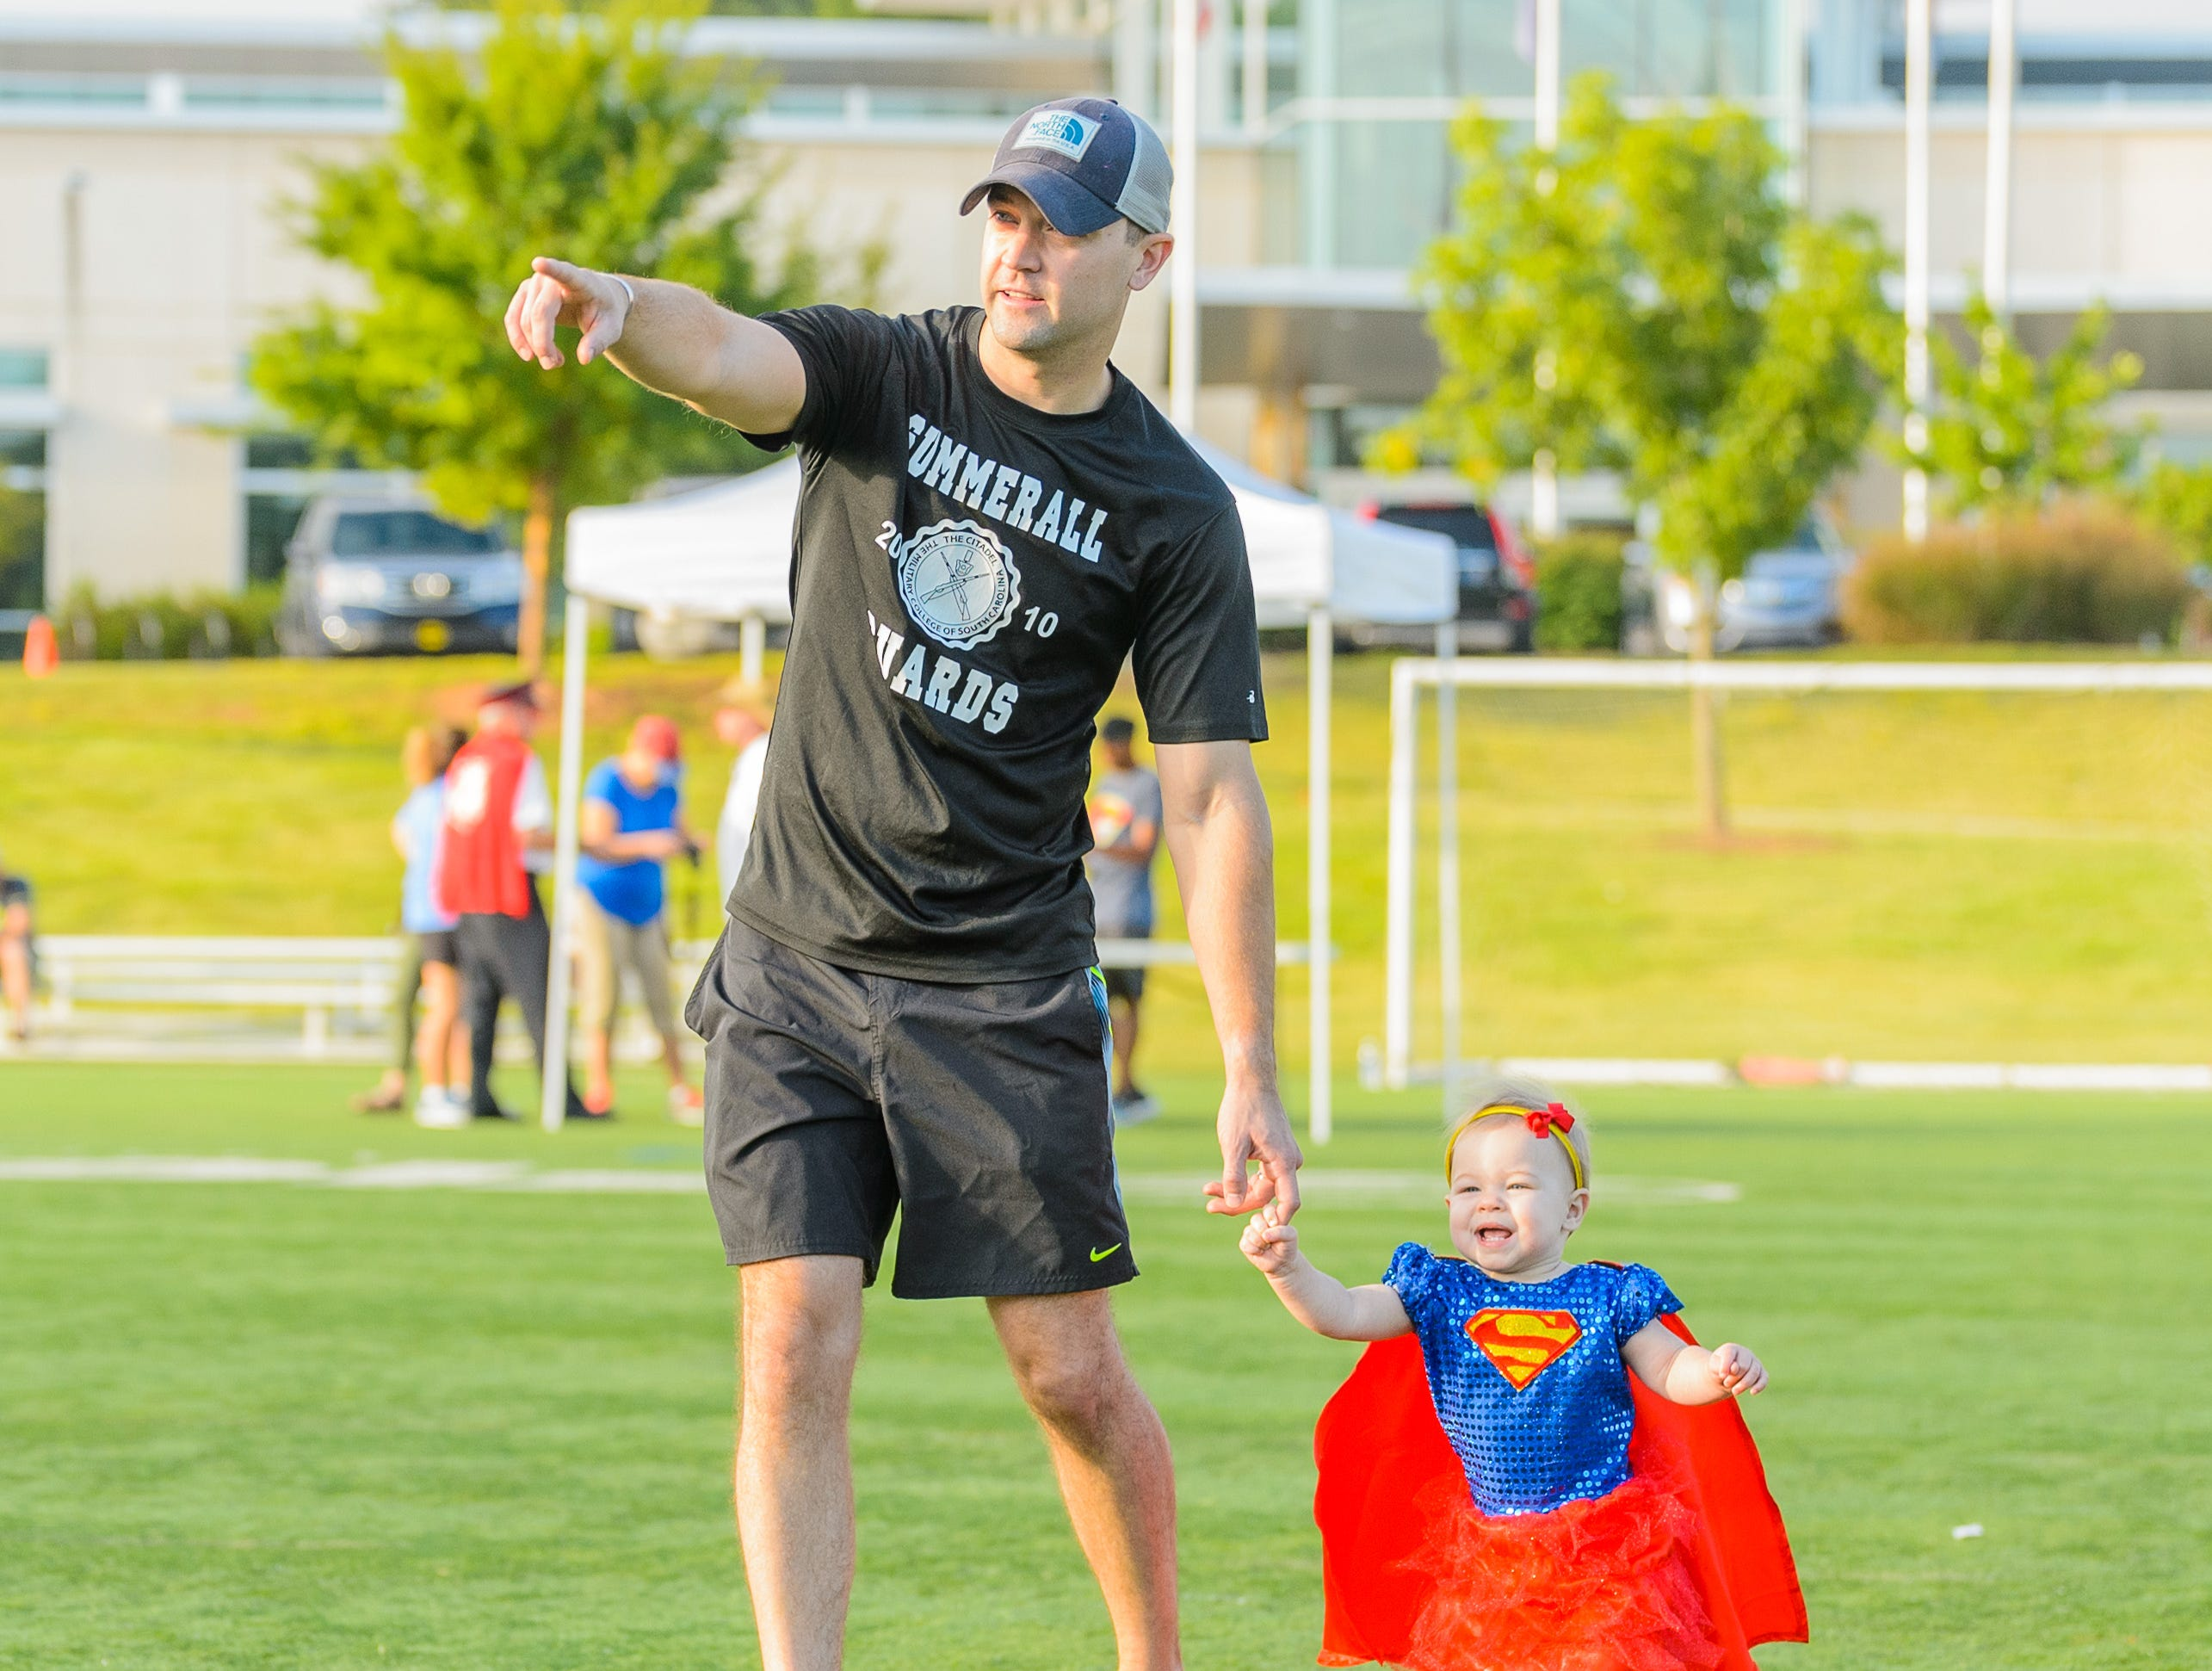 The 4th annual Superhero 5K to benefit The Salvation Army Boys & Girls Club is held on Saturday, August 11, 2018 at the Kroc Center in Downtown Greenville.